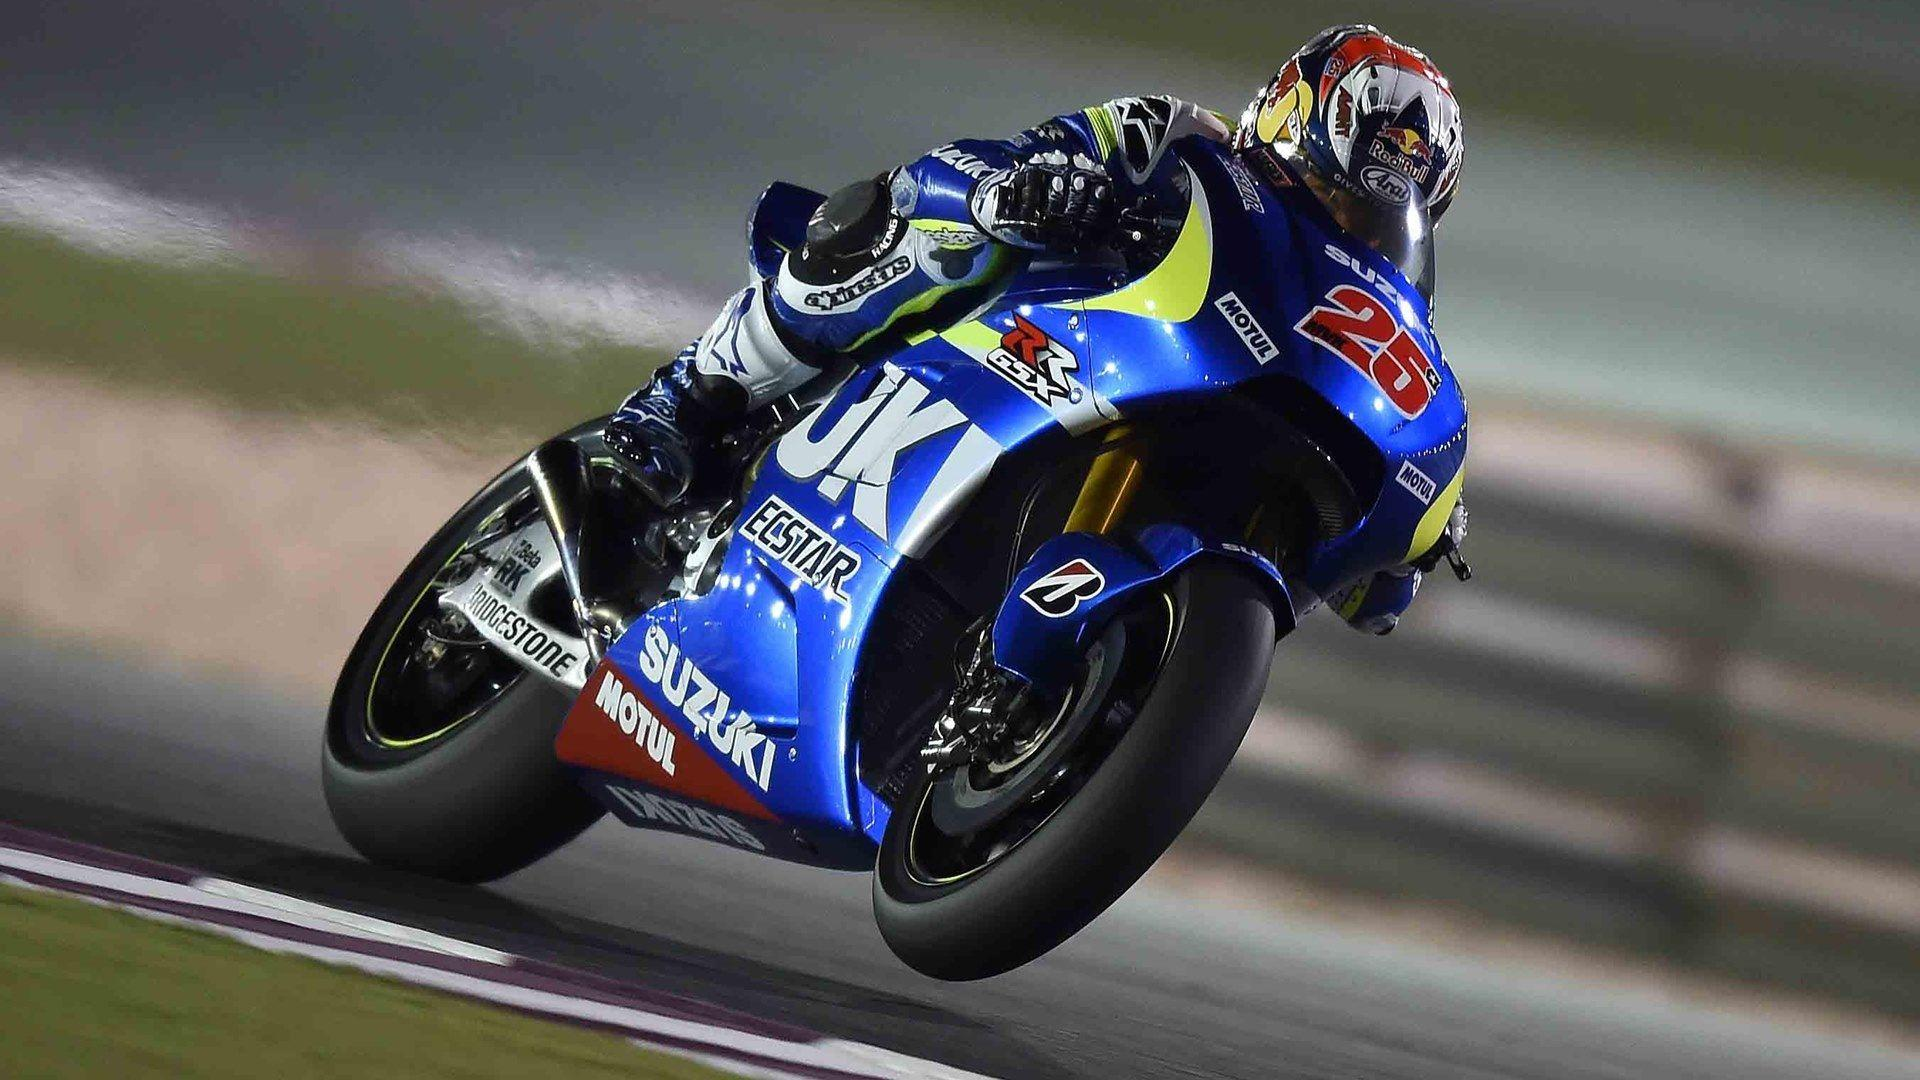 Maverick Vinales MotoGP Wallpaper HD